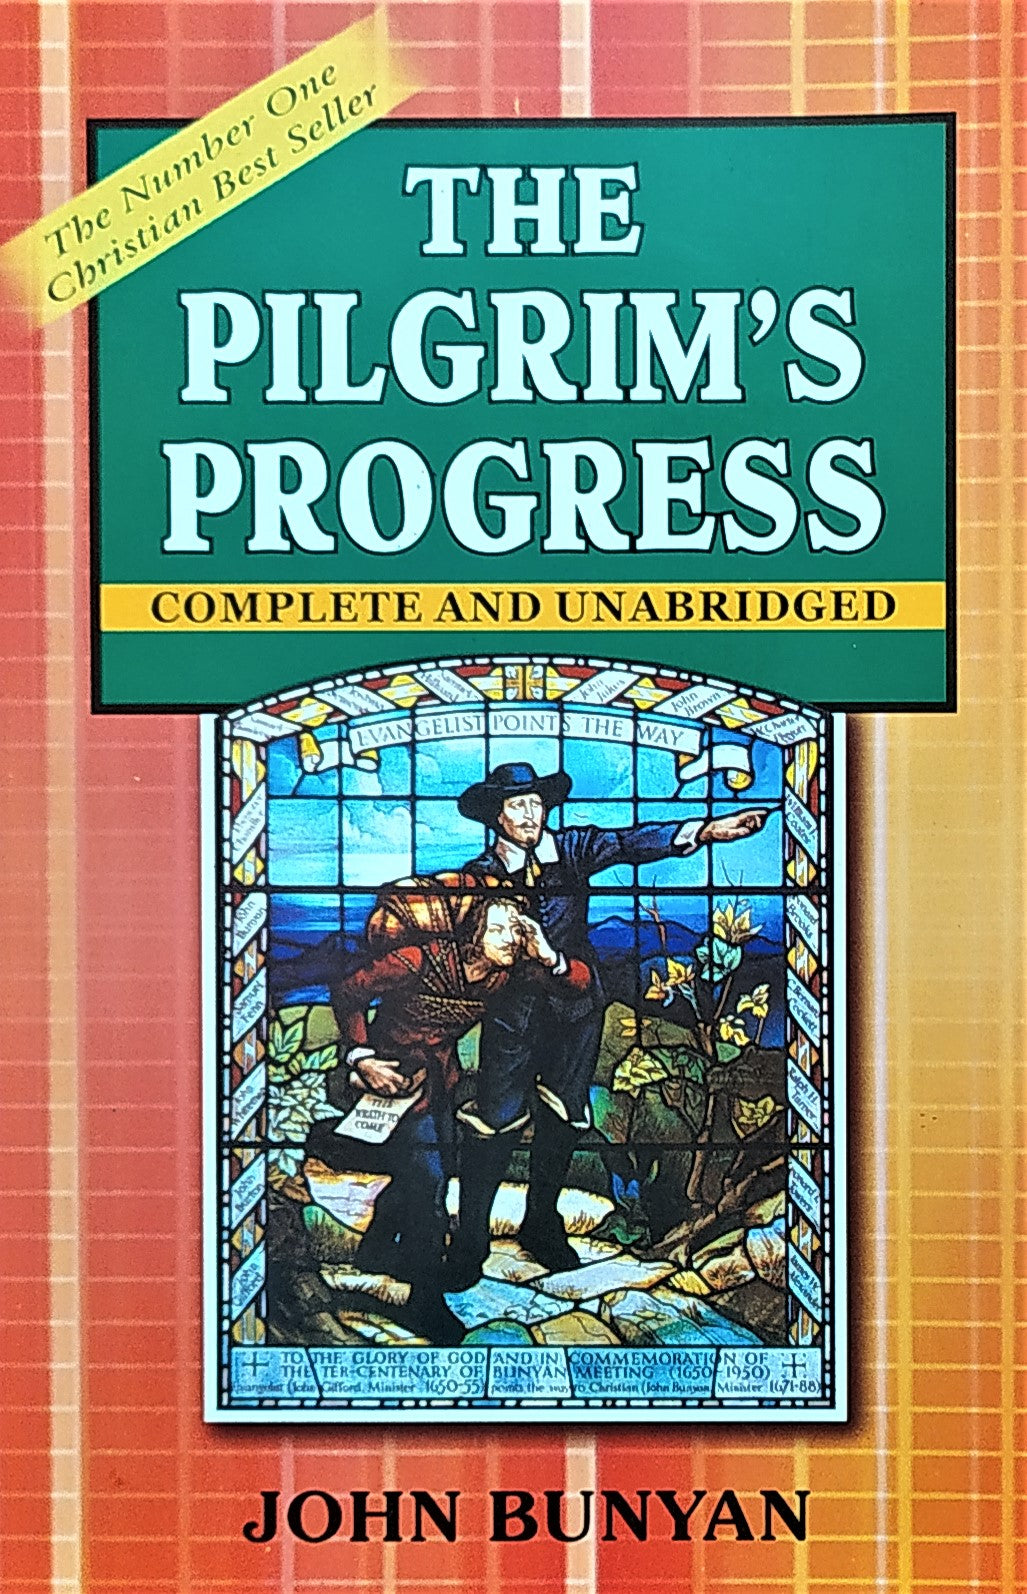 The Pilgrim's Progress - Complete and Unabridged [ELS Publications]